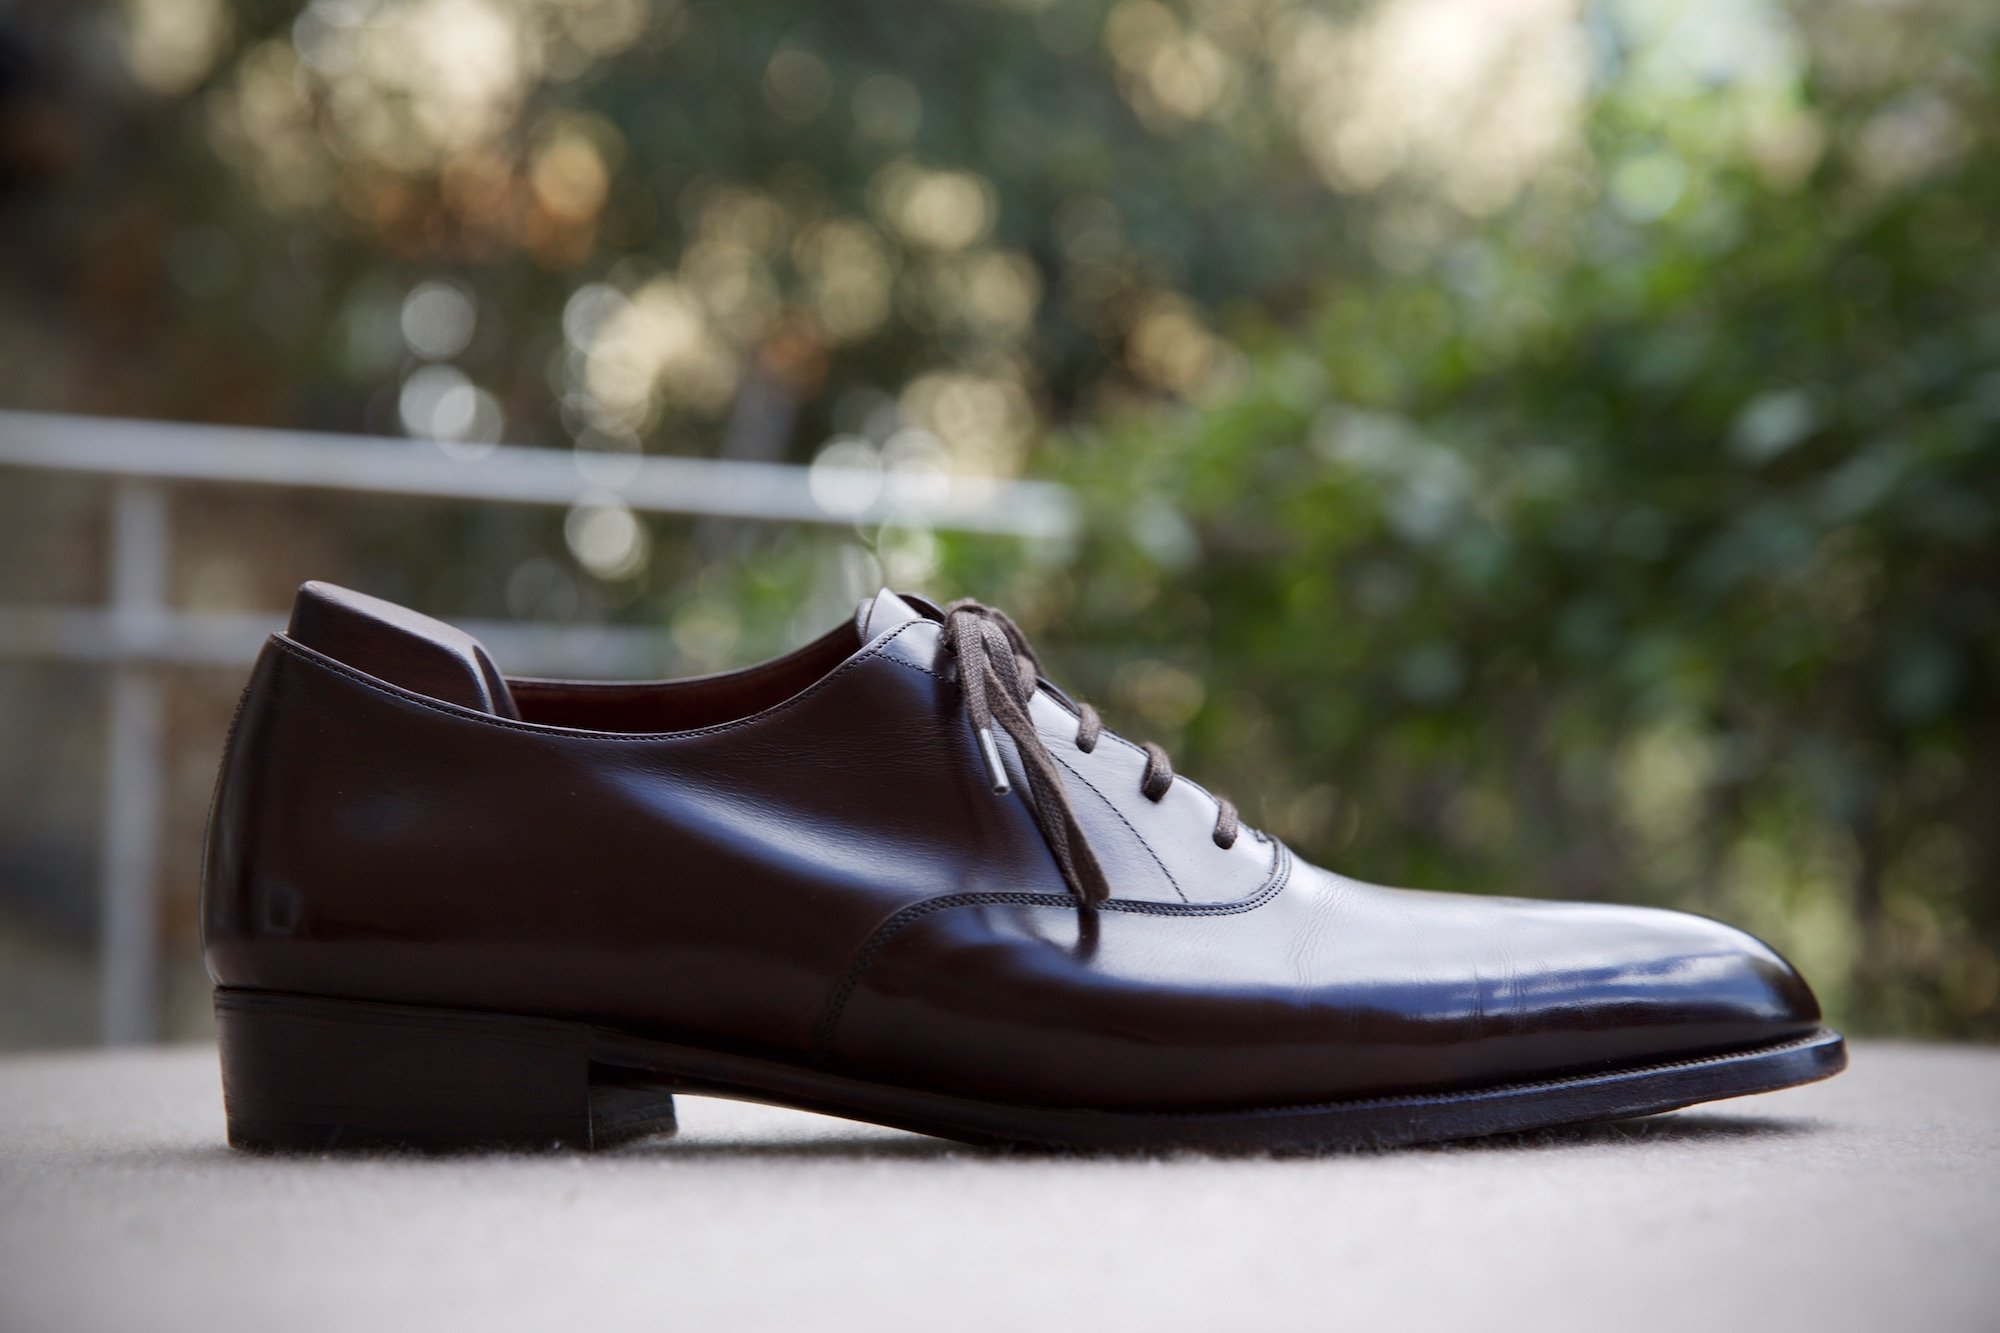 Foster & Son bespoke shoe profile